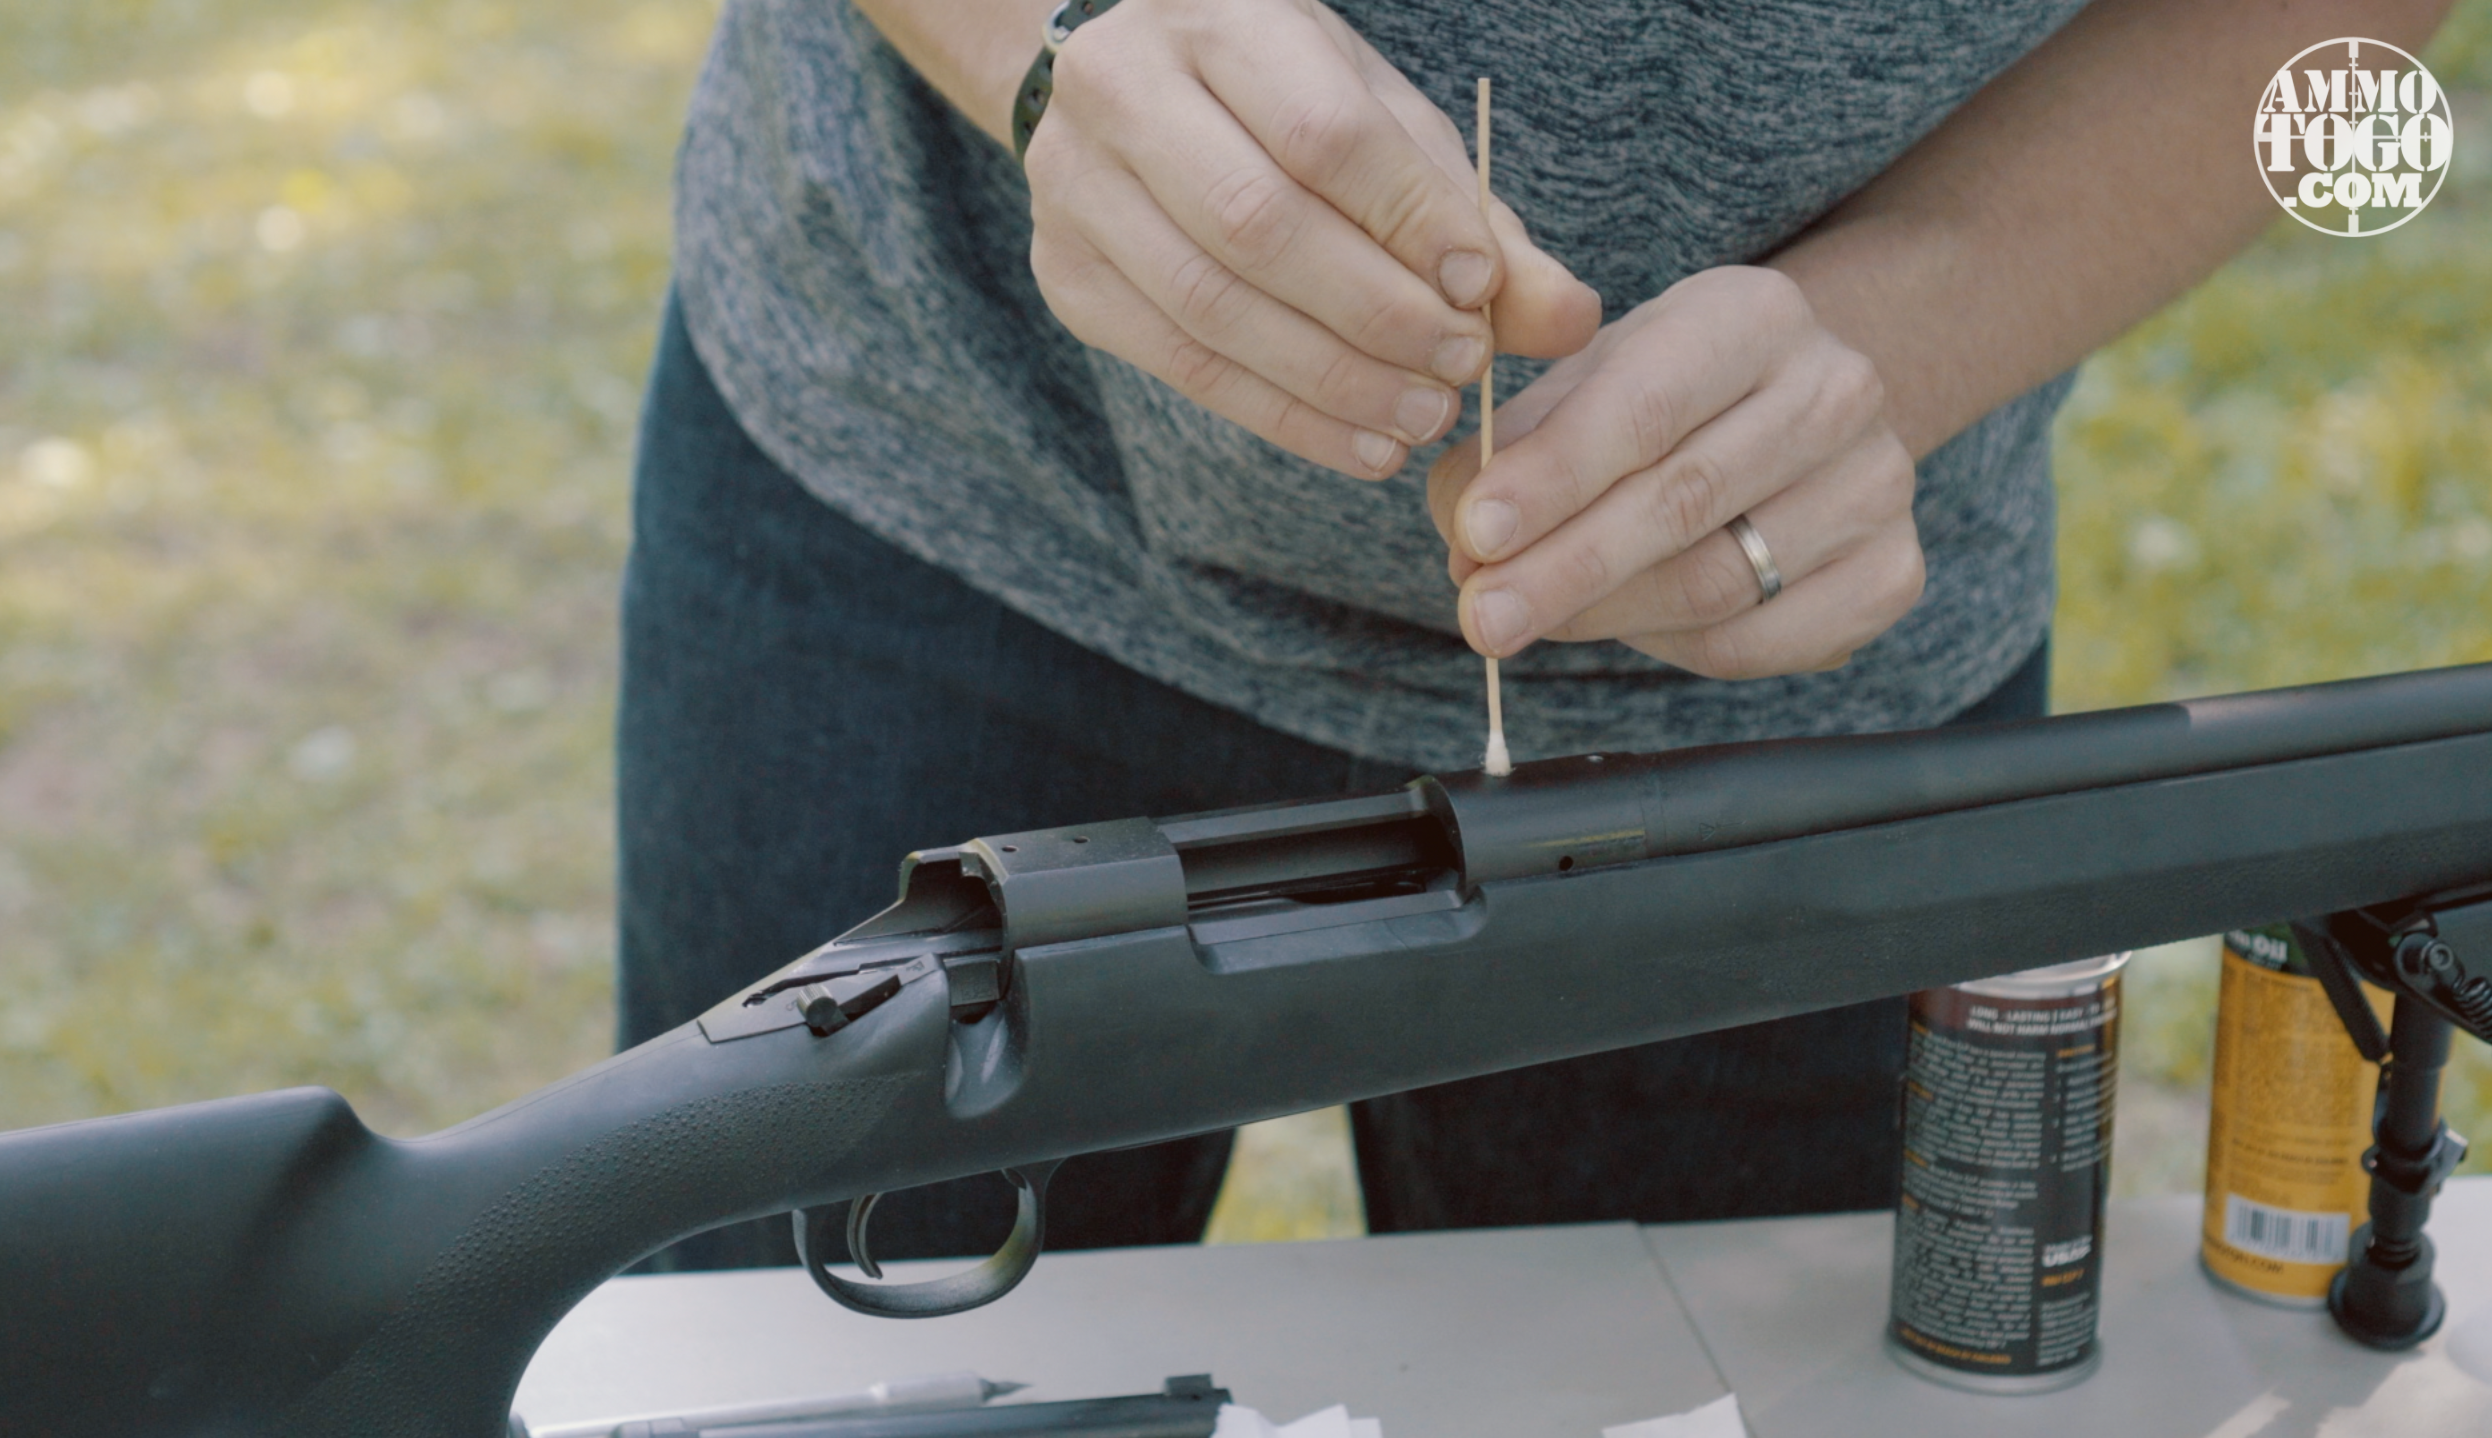 Removing Dirt and Grease From Rifle Receiver